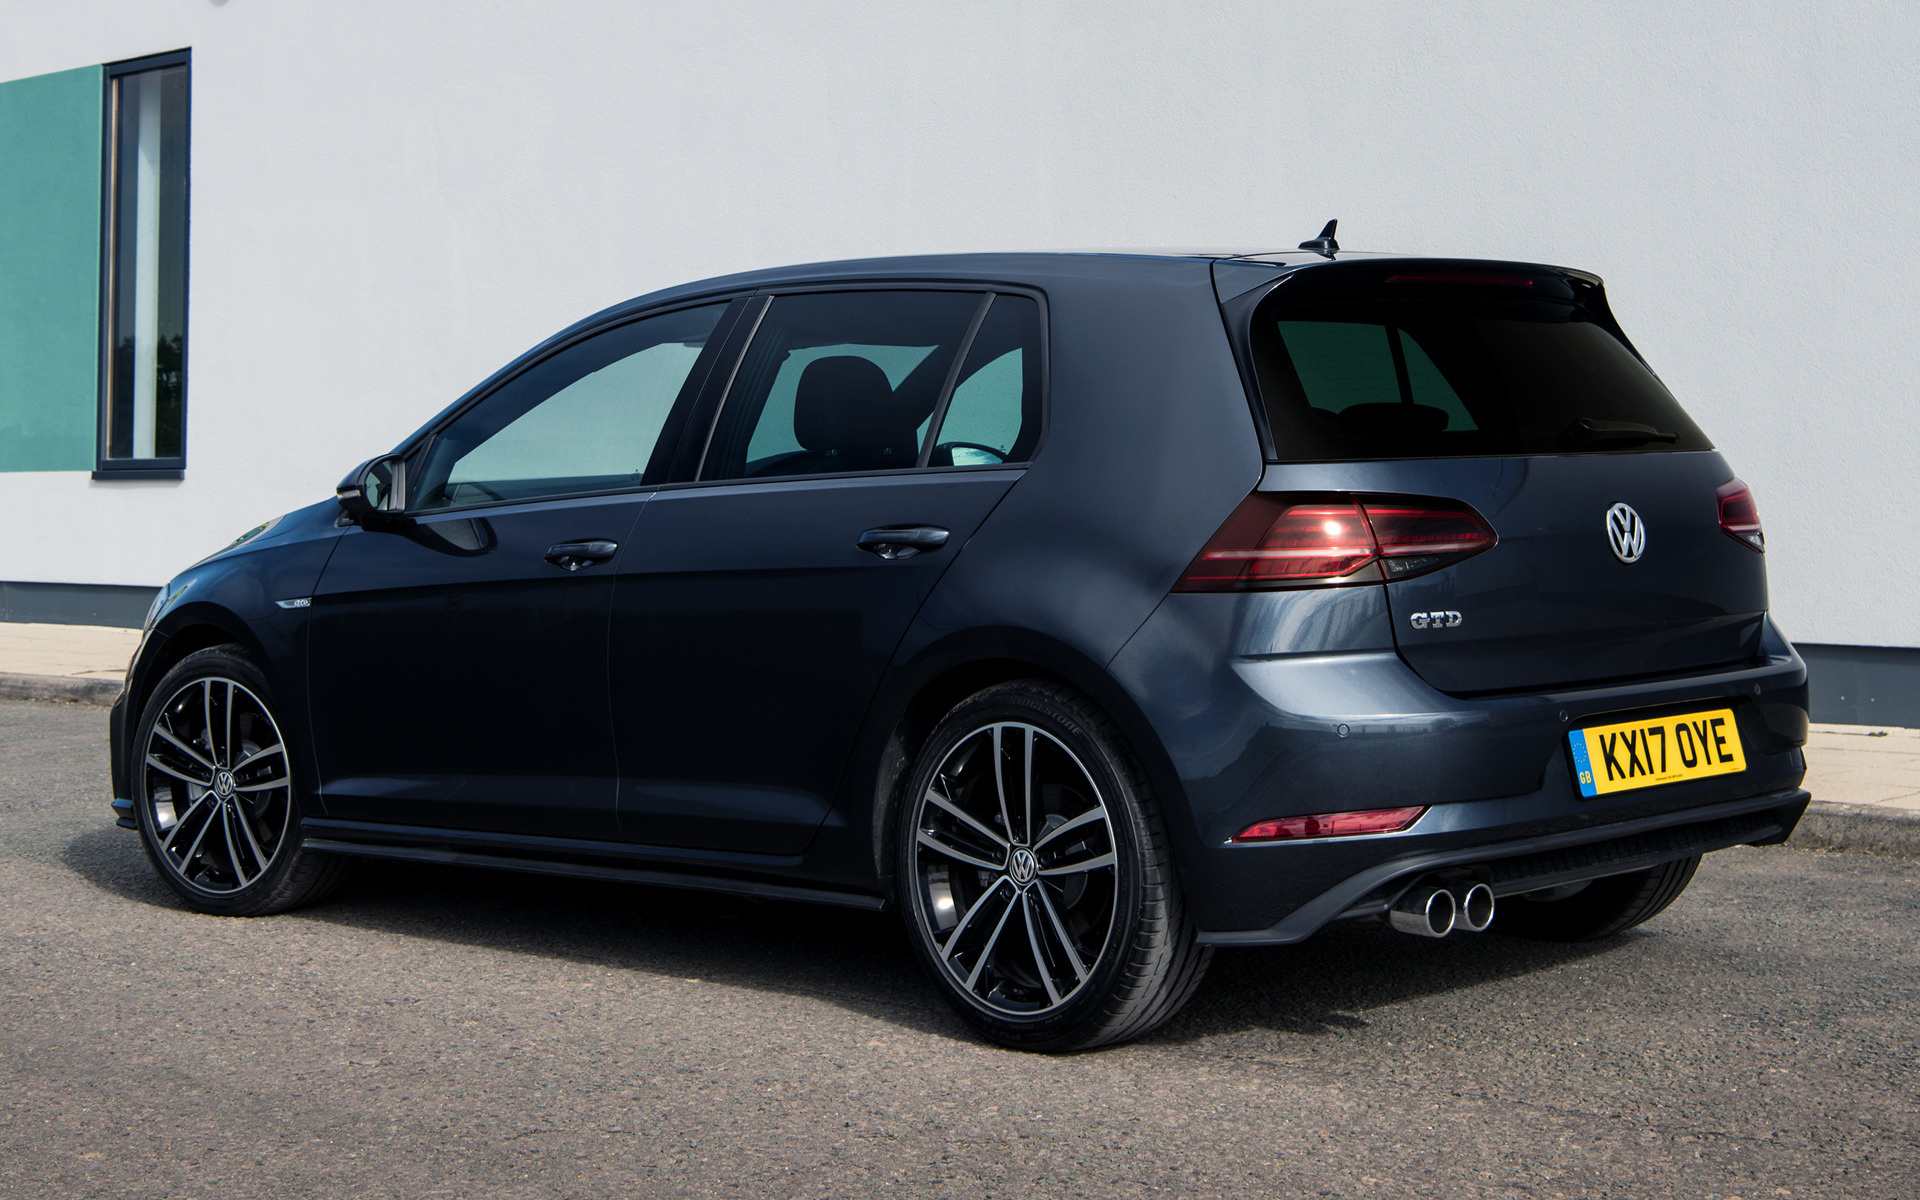 volkswagen golf gtd 5 door 2017 uk wallpapers and hd images car pixel. Black Bedroom Furniture Sets. Home Design Ideas